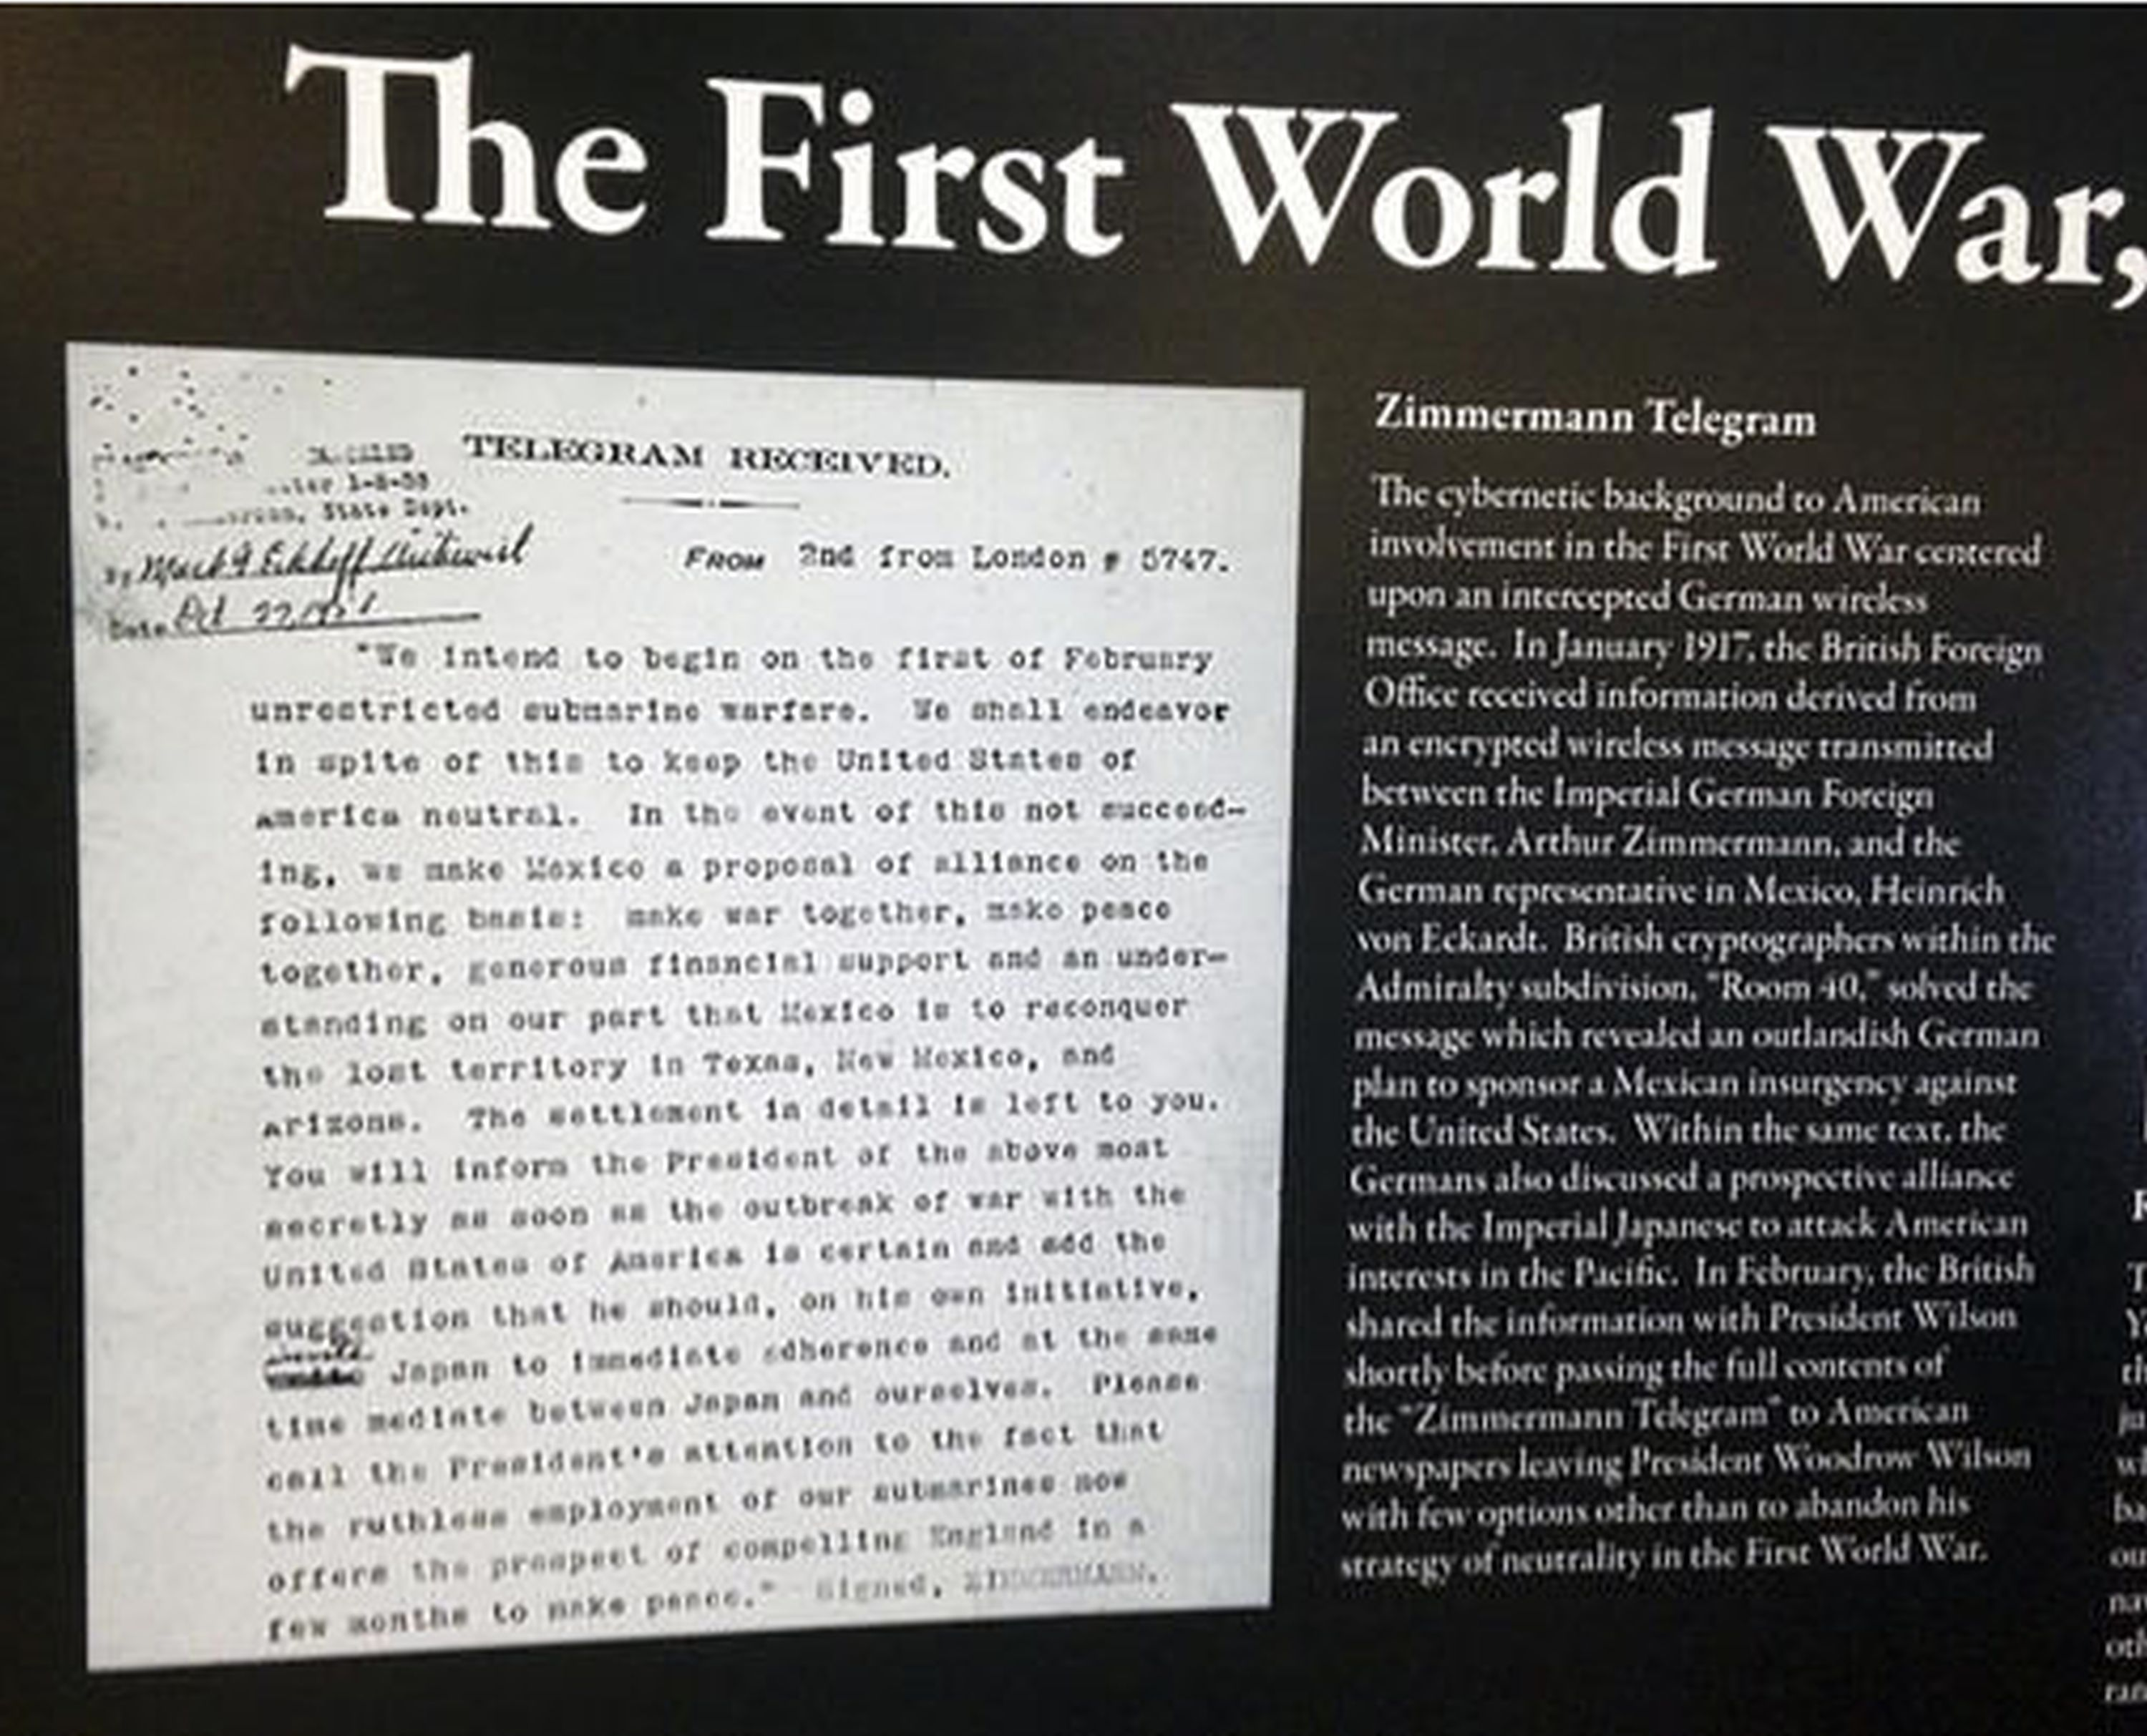 A copy of the decoded telegram is displayed at a gathering at the U.S. Naval War College in Newport, R.I. Known as the 'Zimmerman Telegram,' it was intercepted and decoded by Britain then forwarded to the United States revealing Germany wanted Mexico to join its side during World War I by offering territory in the U.S. JENNIFER MCDERMOTT/AP WIREPHOTO